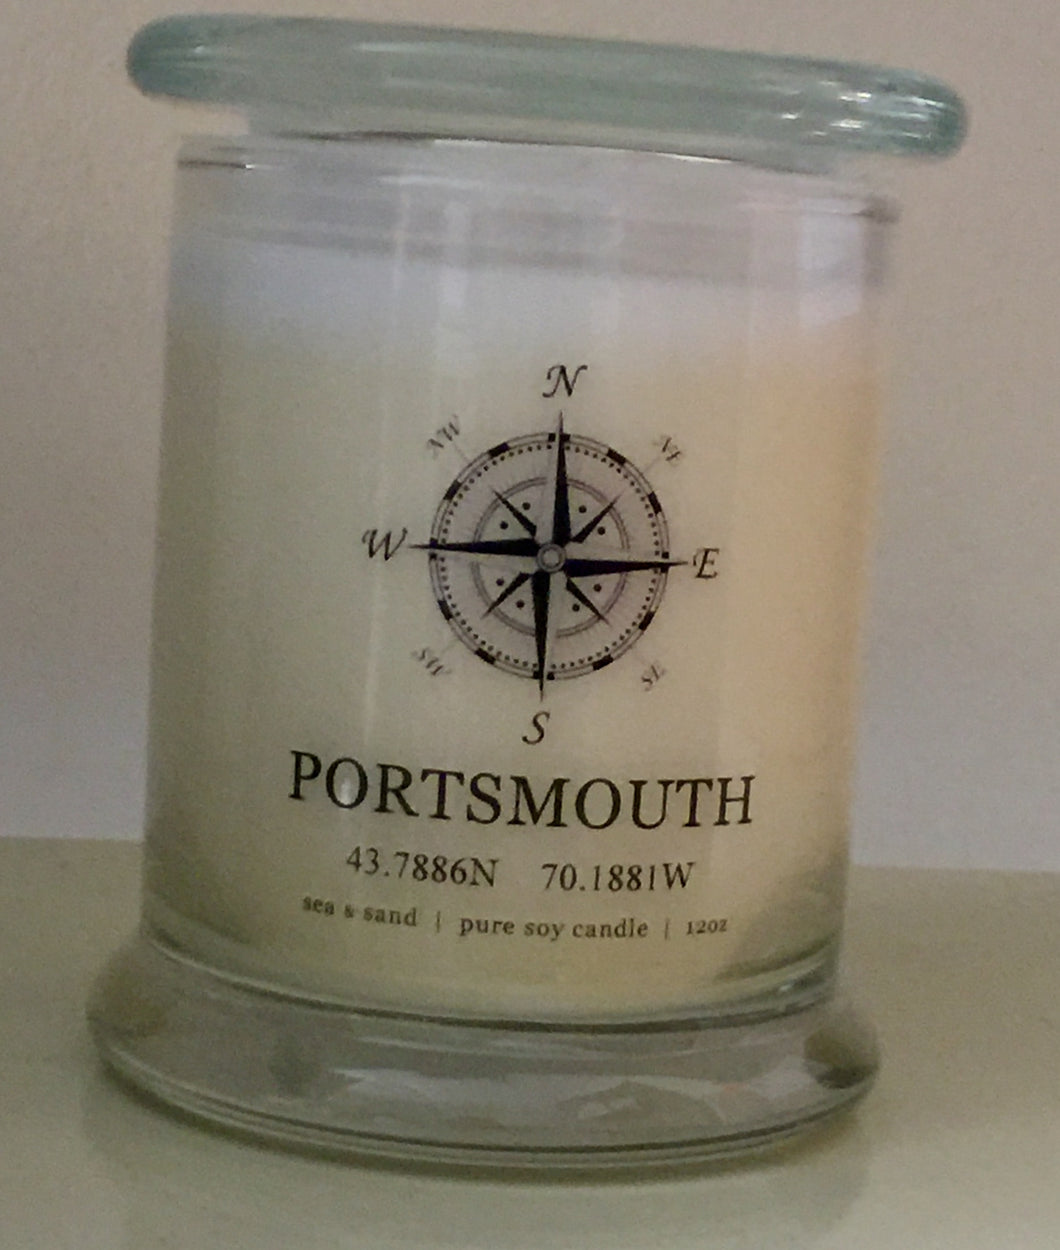 Entering Portsmouth Candle